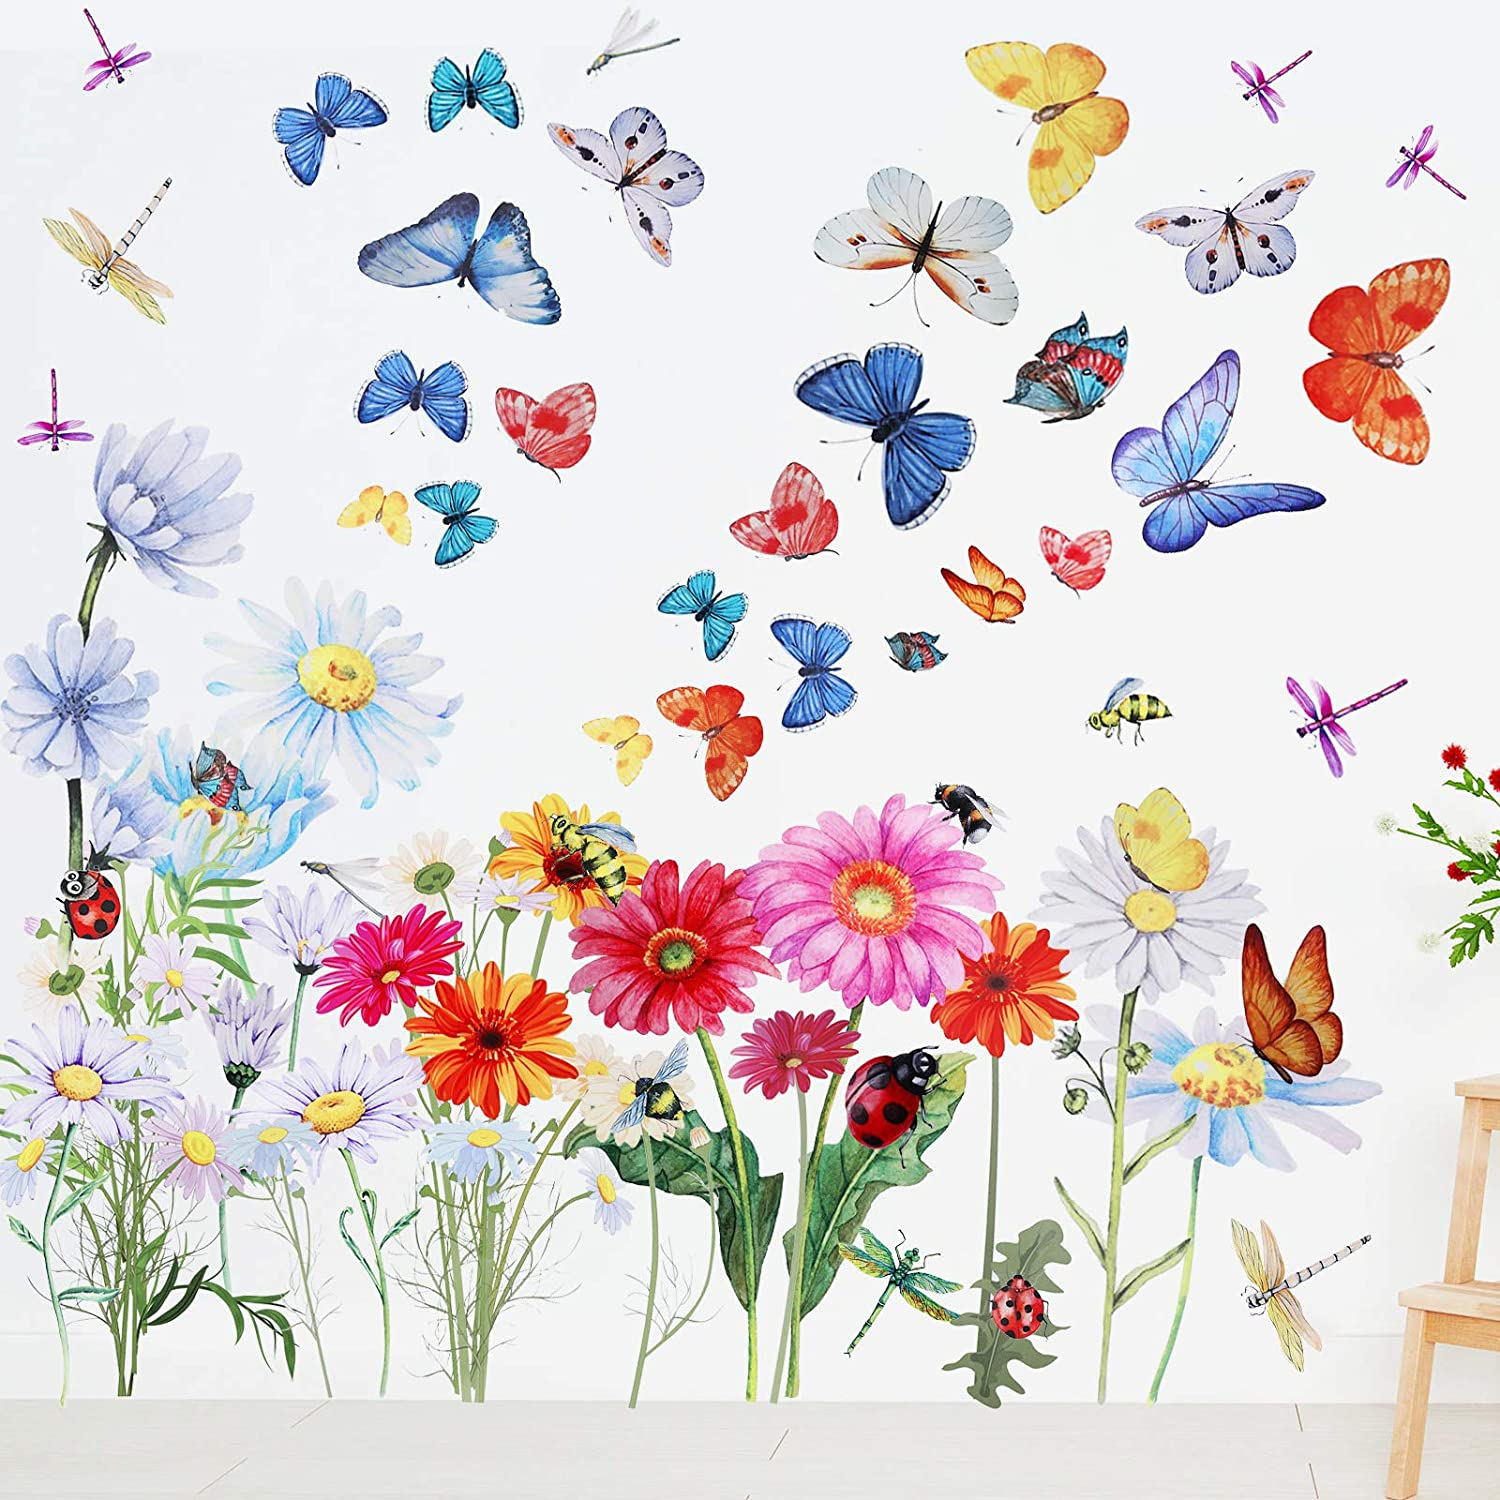 65 Pieces Chrysanthemums Flowers Wall Decal Garden Butterflies Dragonflies Vinyl Wall Decals Stickers Removable Peel and Stick for Kids Room Nursery Classroom Bedroom Decoration (Colorful)